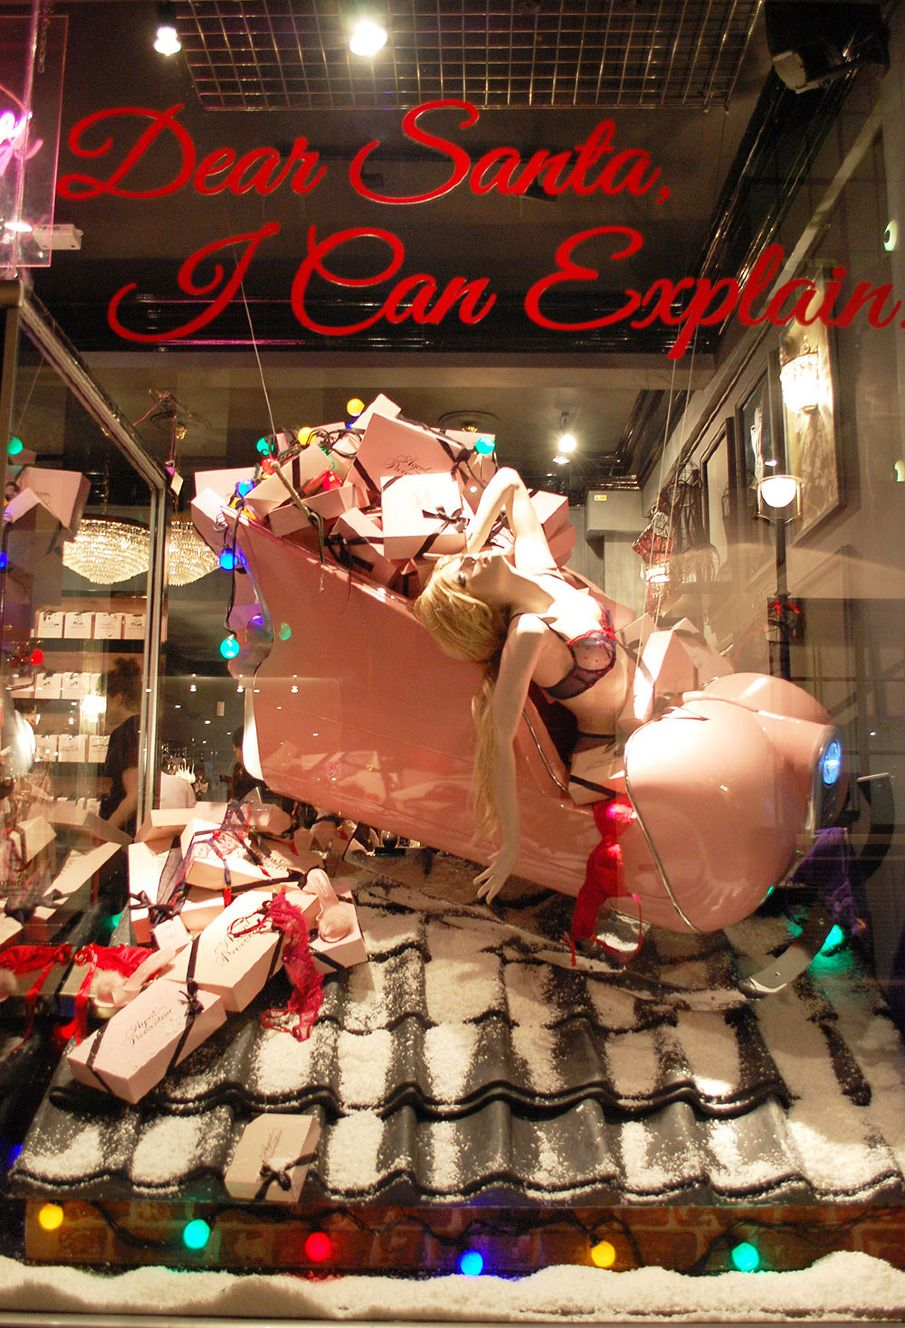 While Agent Provocateur's window is a cleaver use of mannequin and prop.